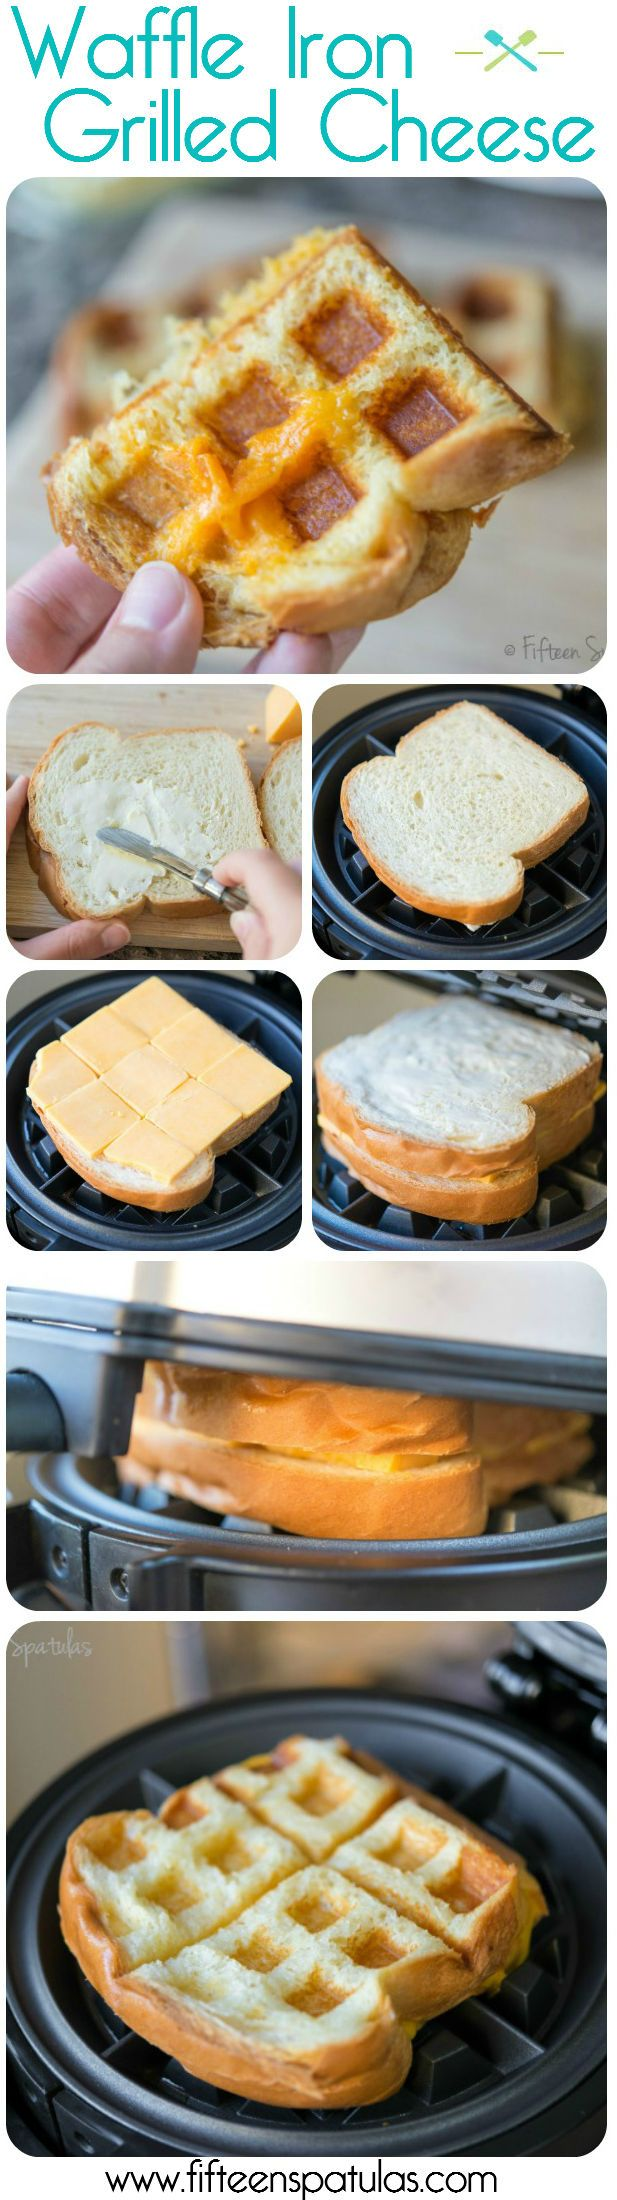 Such a fun idea! Waffle Iron Grilled Cheese Sandwich.